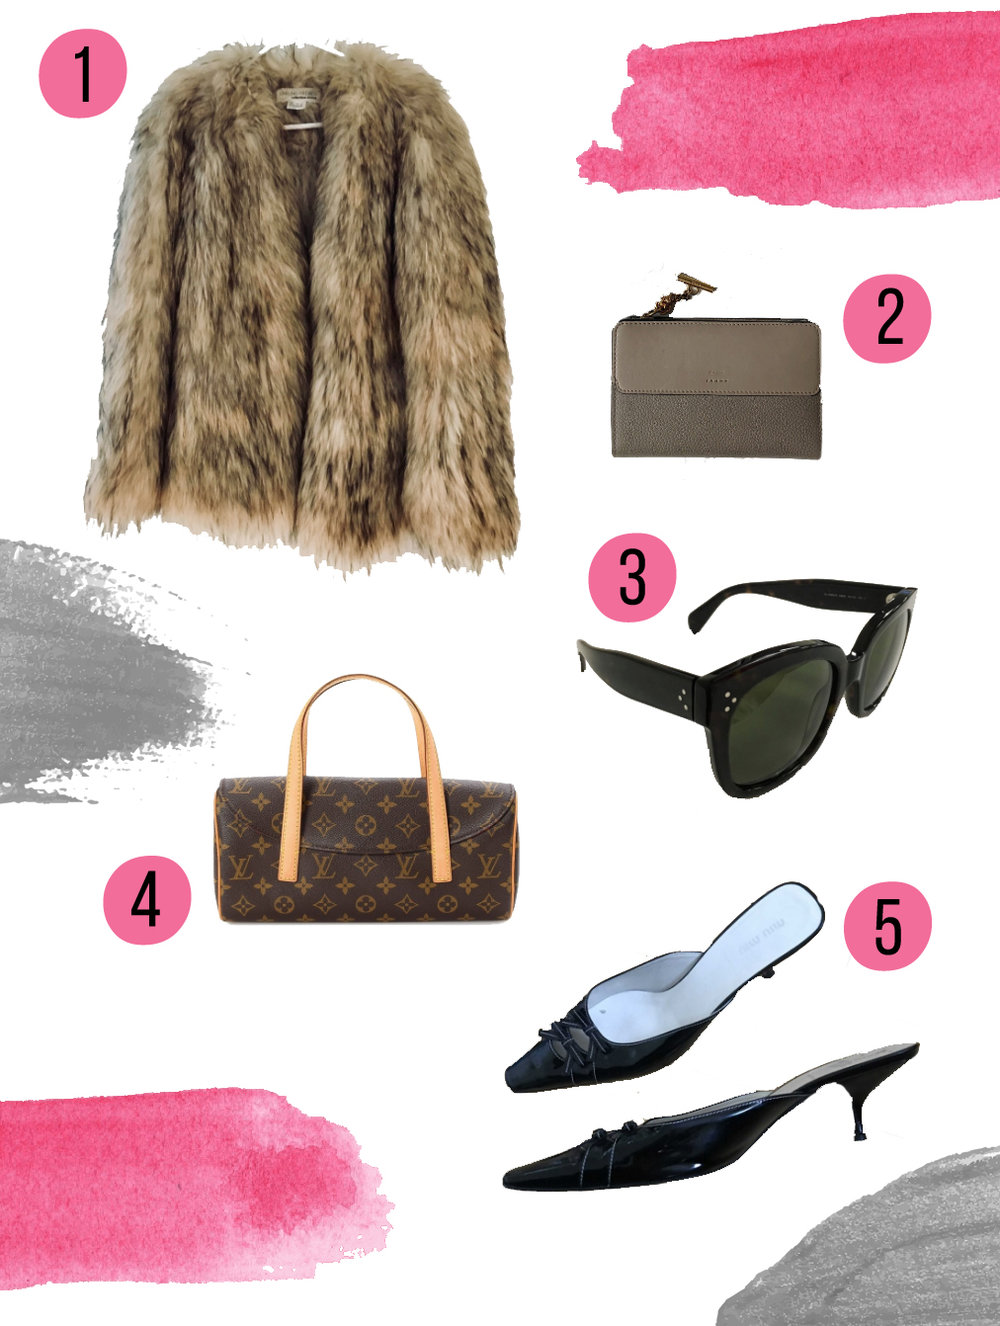 1.    FUR COAT    // 2.    CHLOE WALLET    // 3.    CELINE SUNGLASSES    // 4.    LOUIS VUITTON BAG    // 5.    MIU MIU MULES